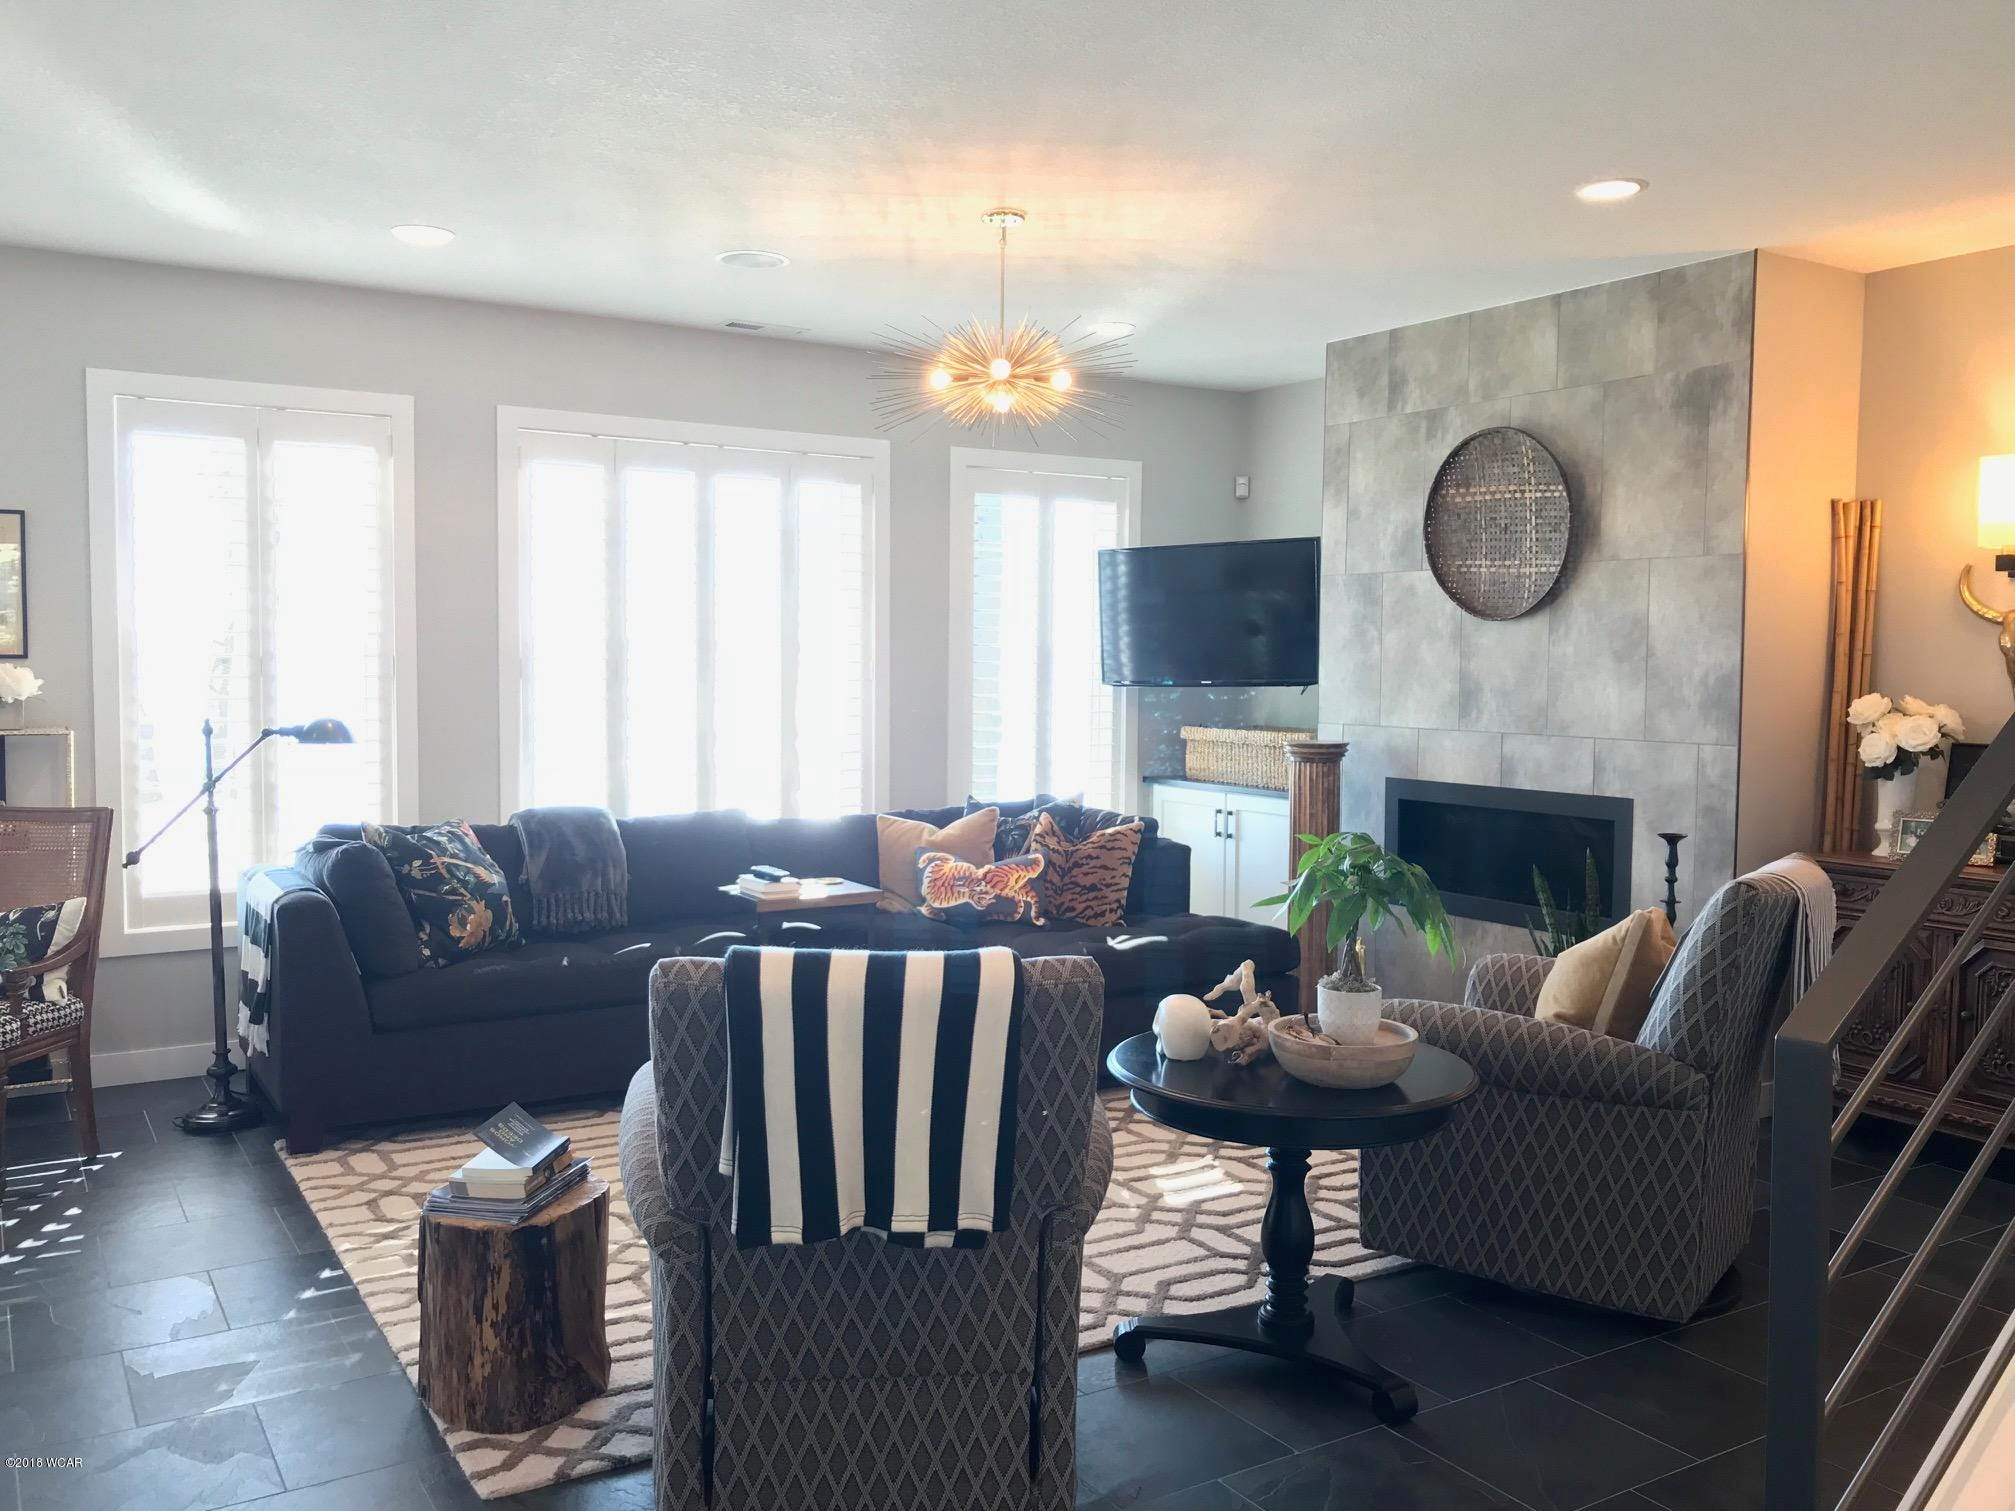 The living room features a floor-to-ceiling fireplace.